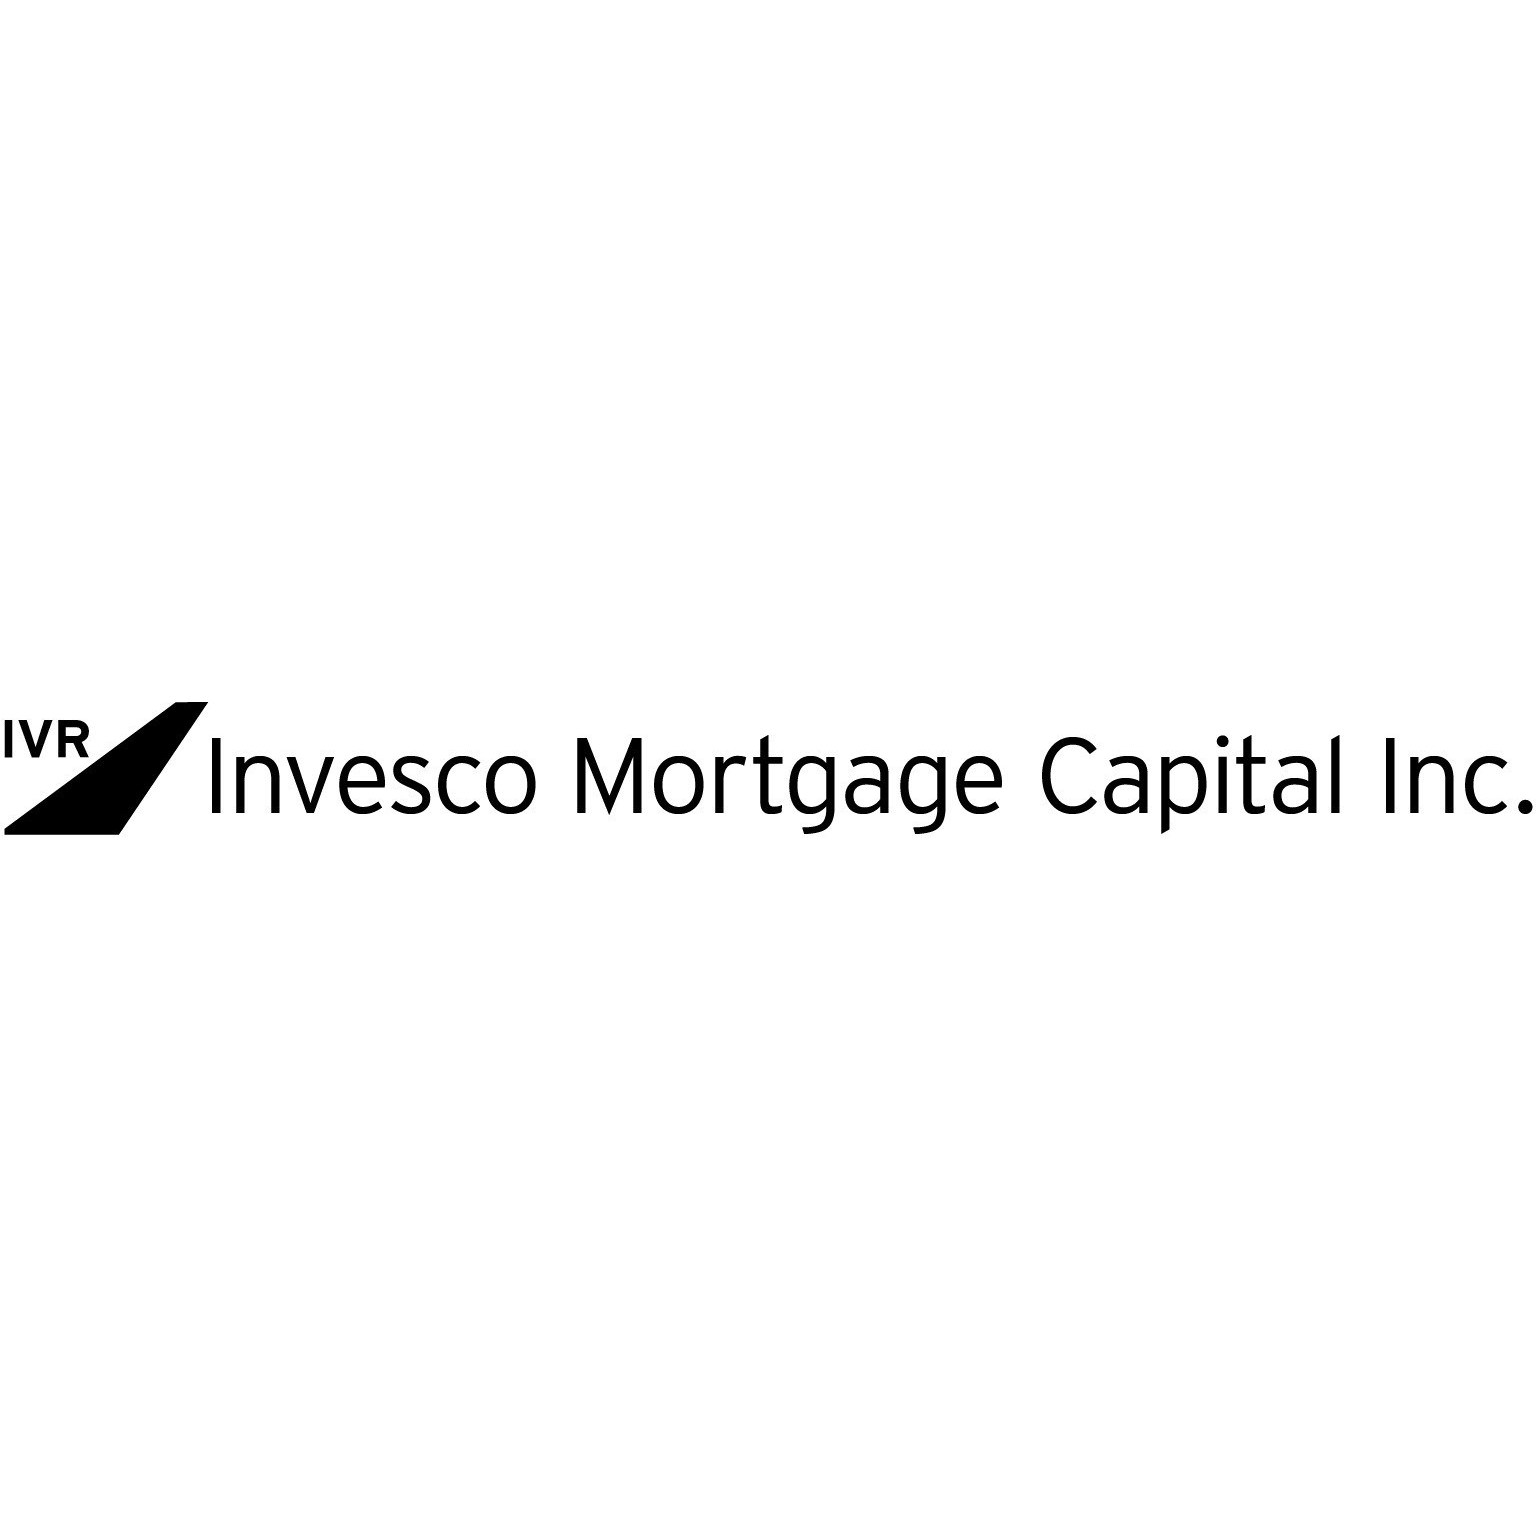 Invesco Mortgage Capital Inc